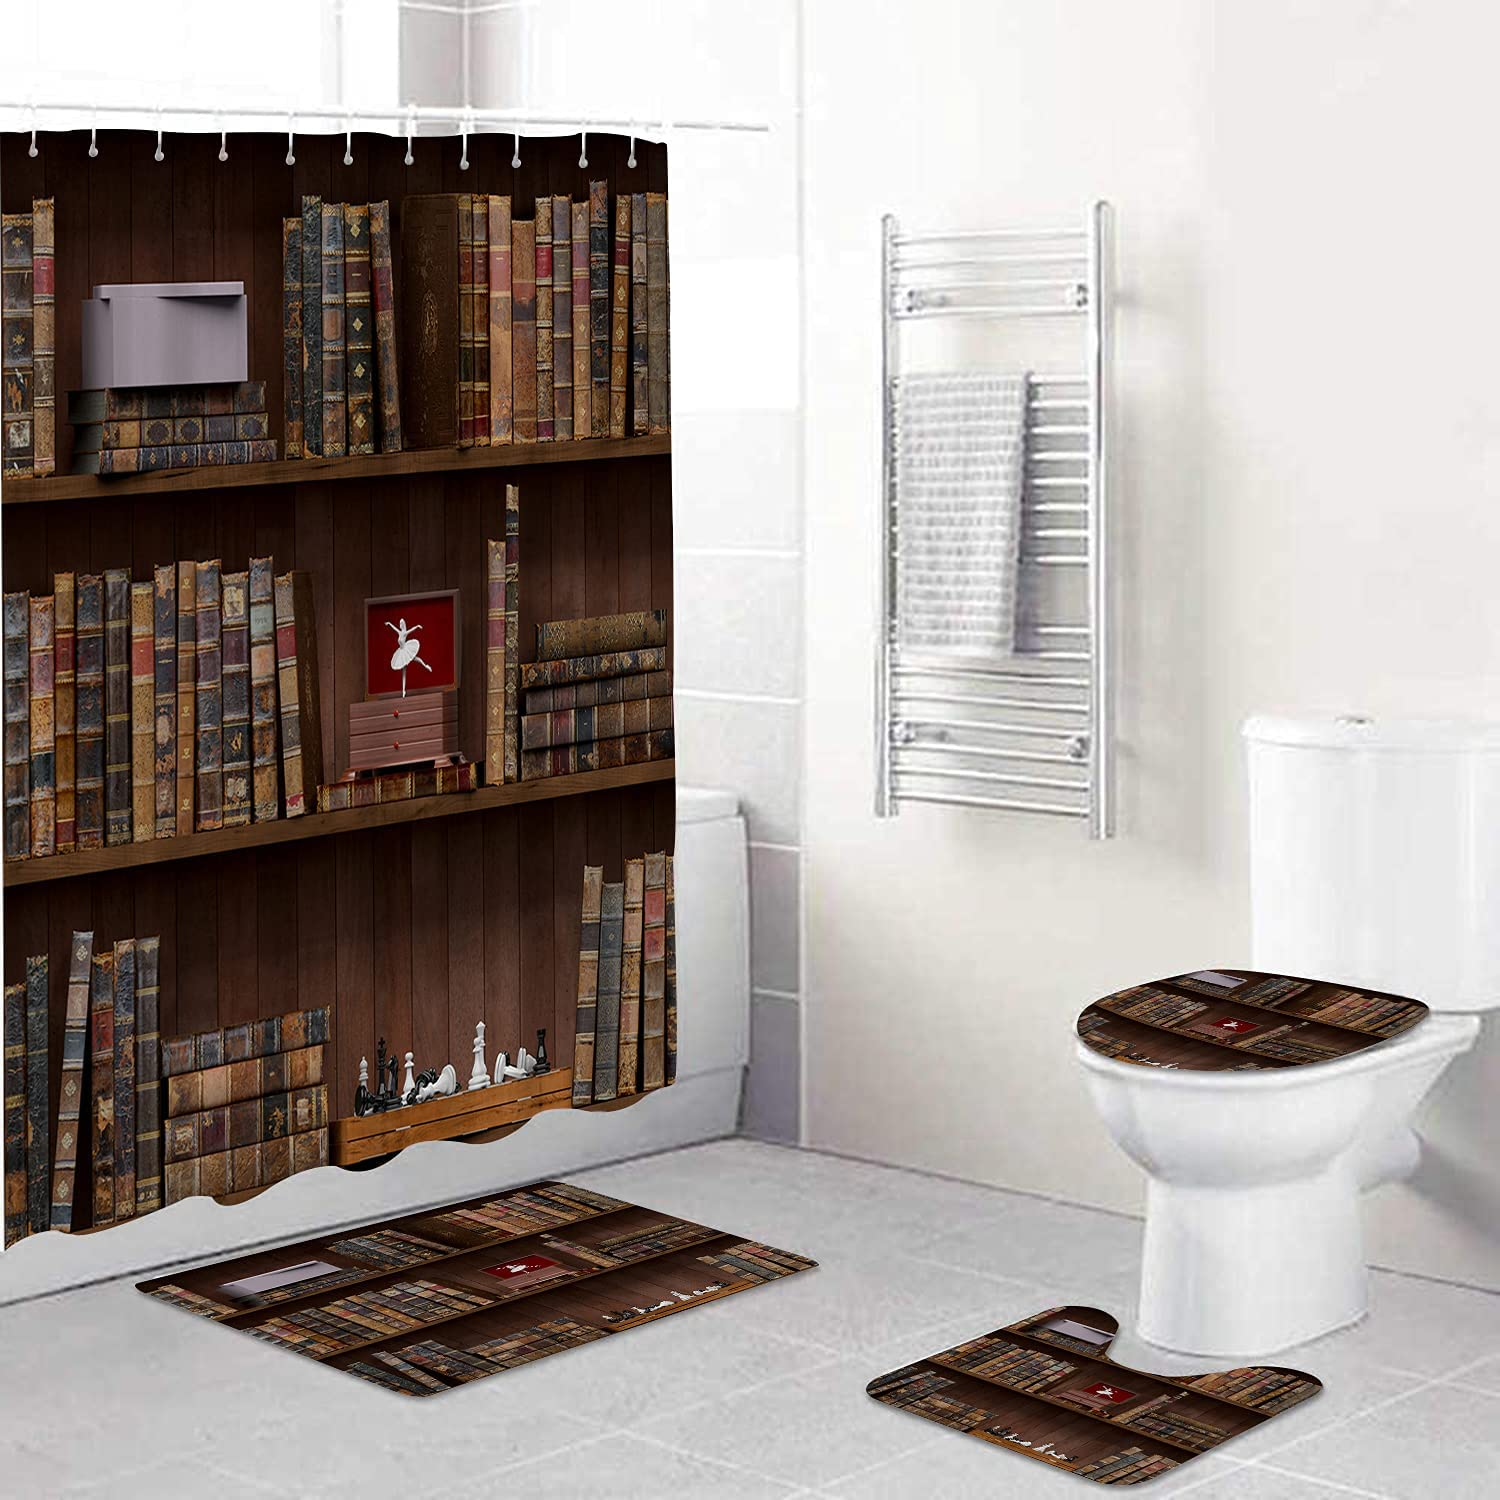 Amextrian 4 Pcs Max 62% OFF Shower Boston Mall Curtain Sets Rugs Toilet with Li Non-Slip